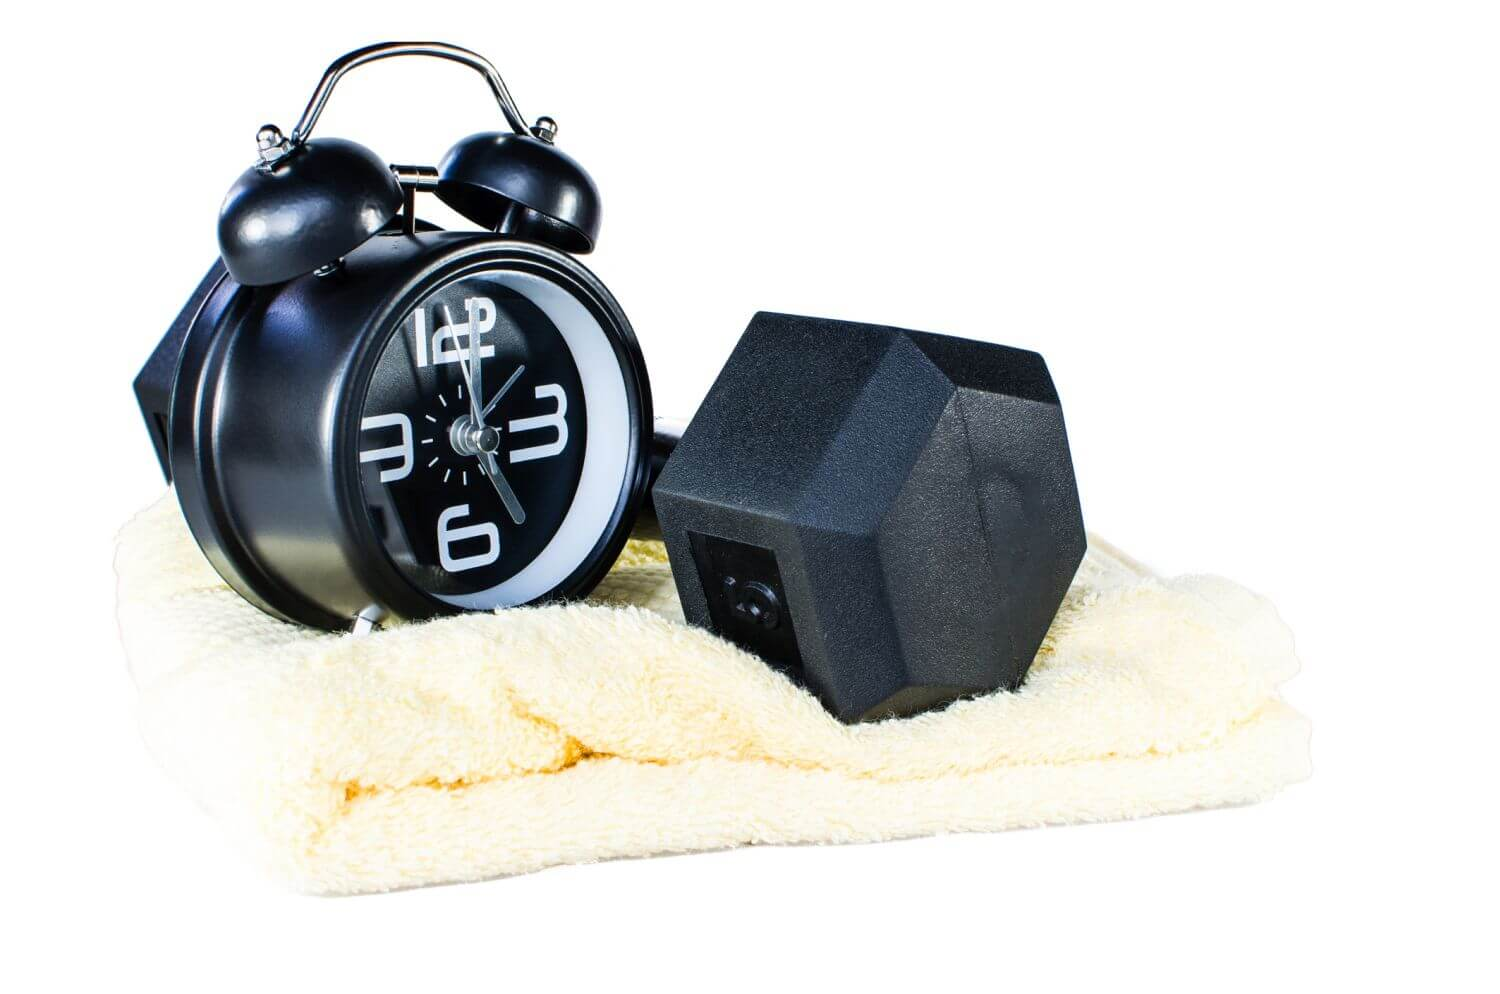 The Best Time to Workout for Busy People